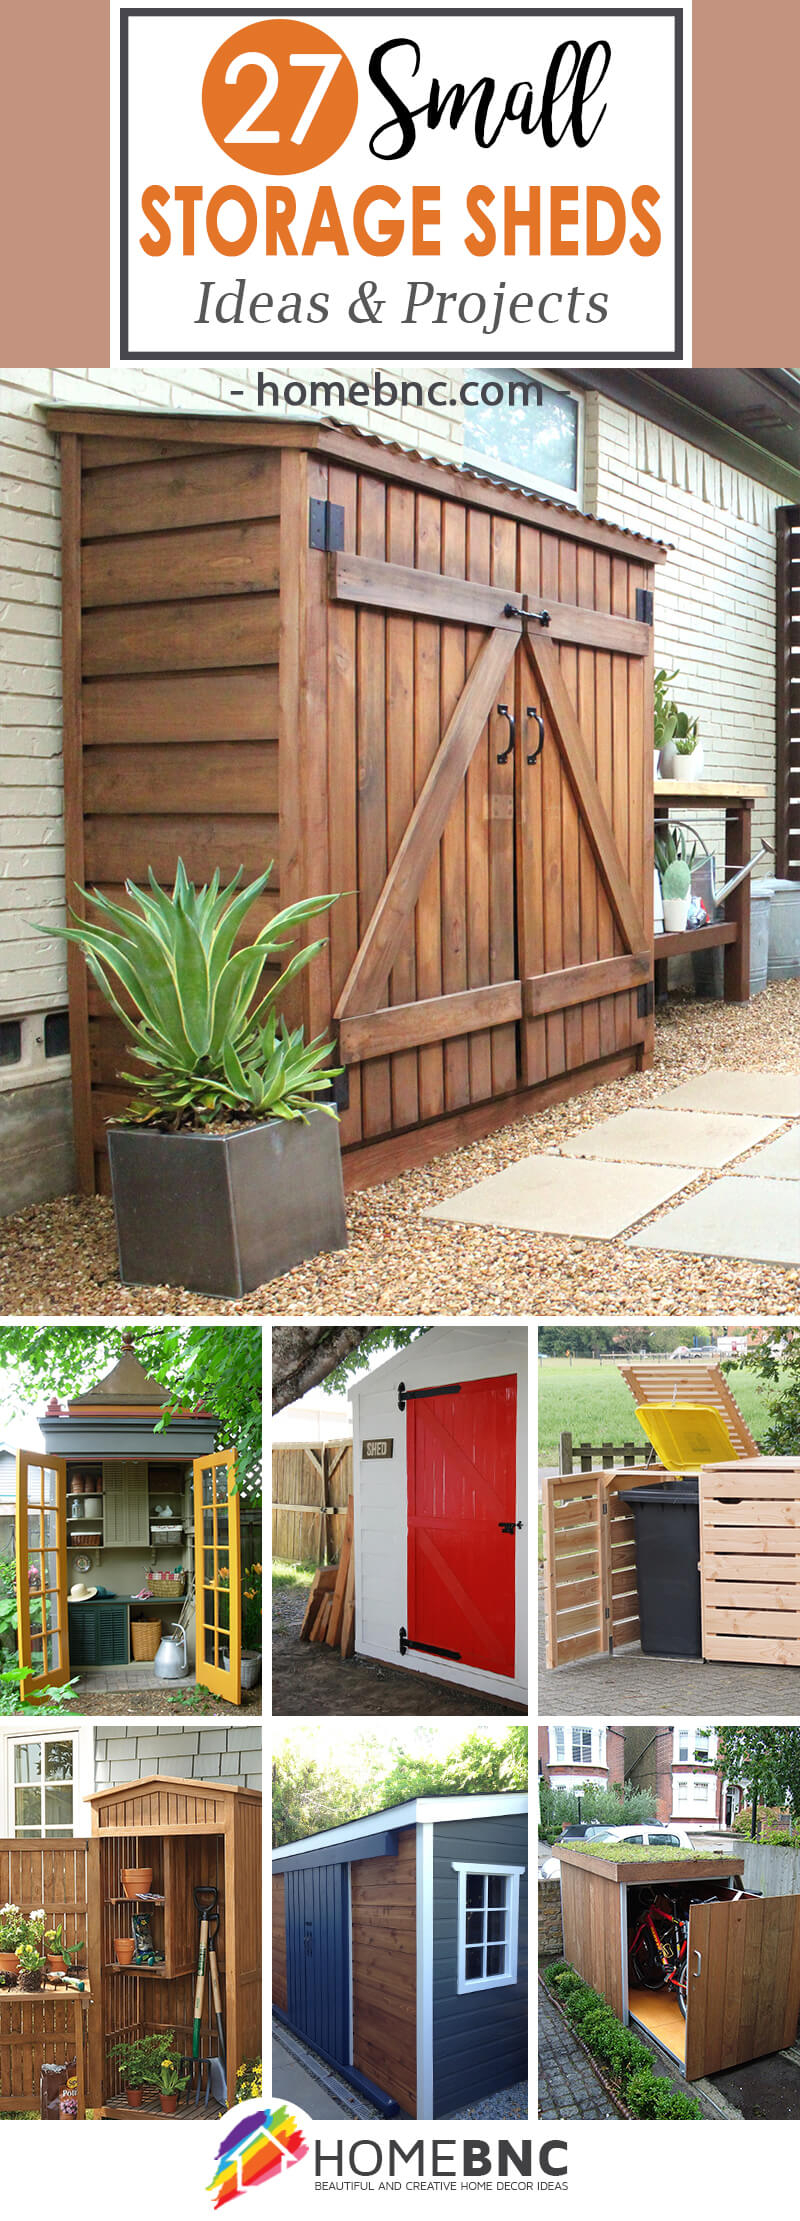 22.SIMPHOME.COM best small storage shed projects ideas and designs for 2019